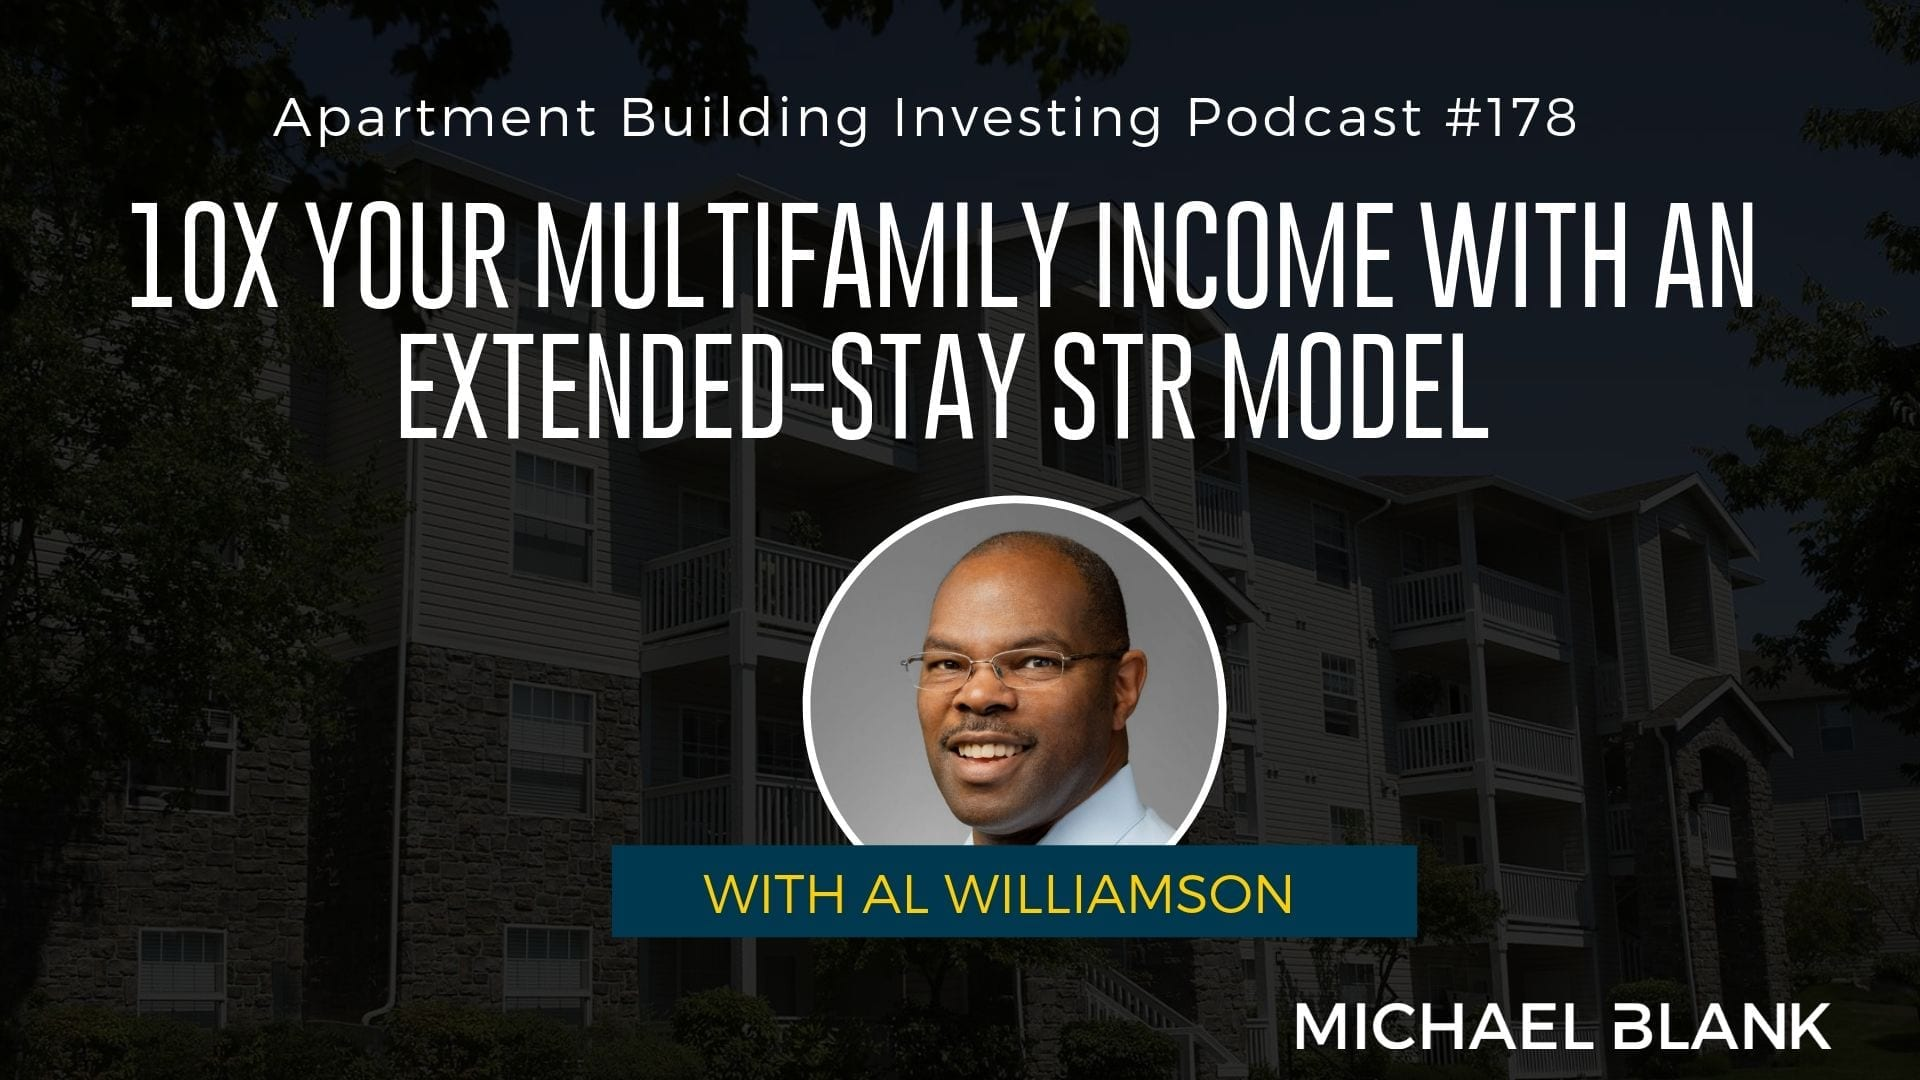 MB 178: 10X Your Multifamily Income with an Extended-Stay STR Model – With Al Williamson